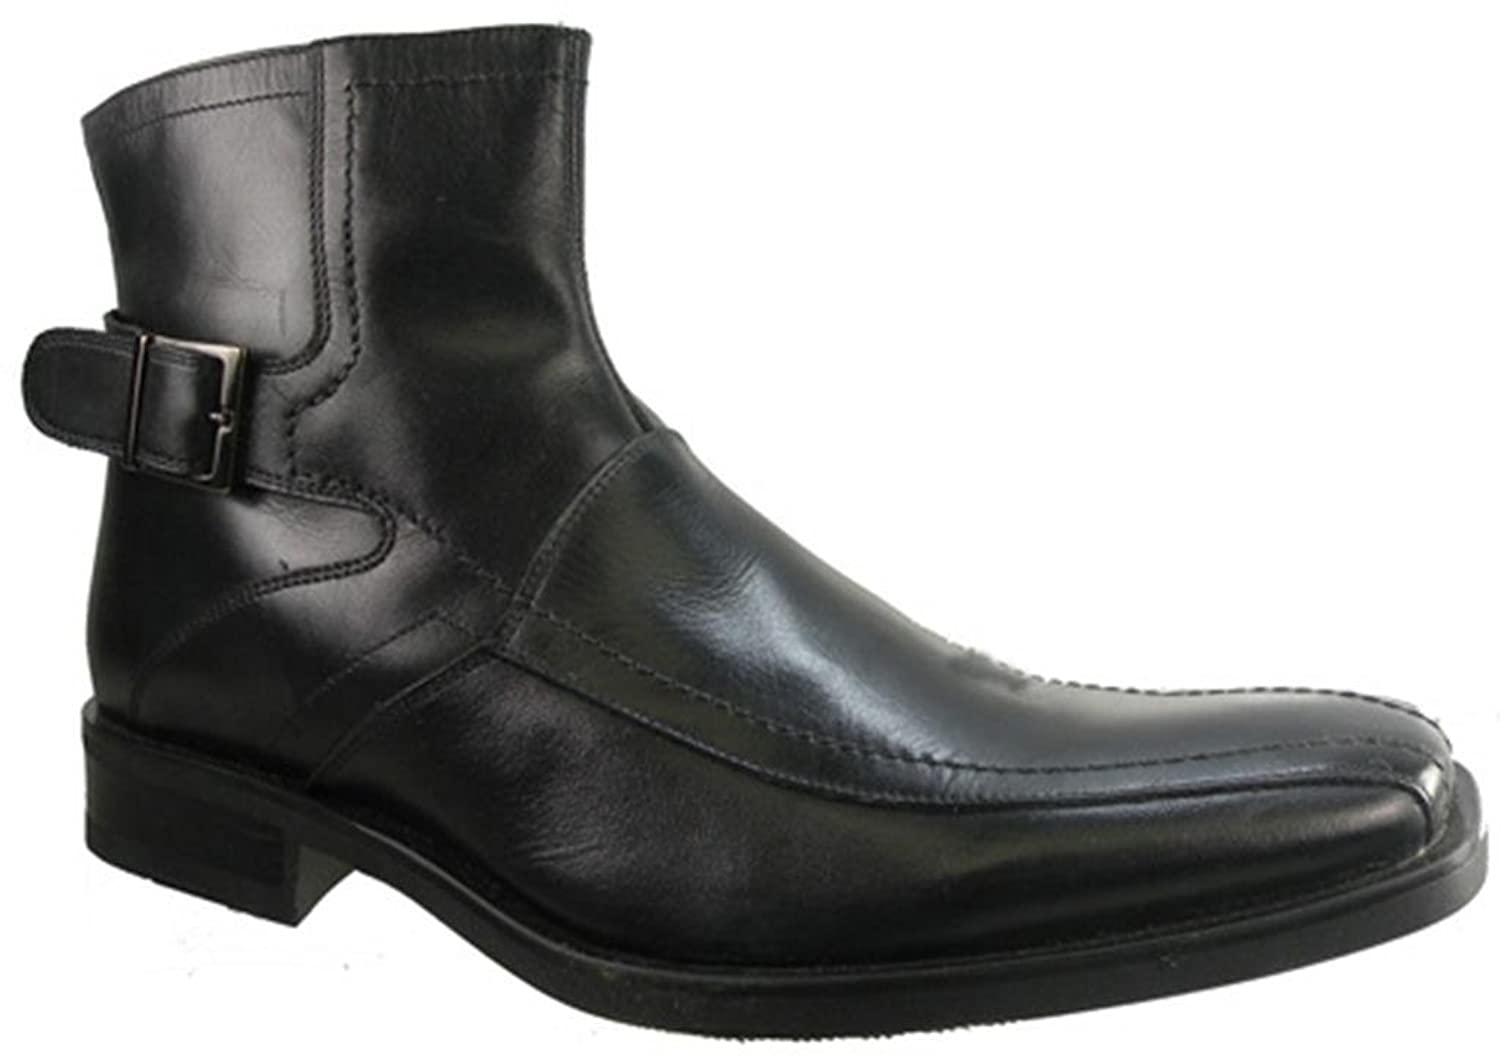 Material London Cannes Men's Boots Size US 12 Black bioinert material